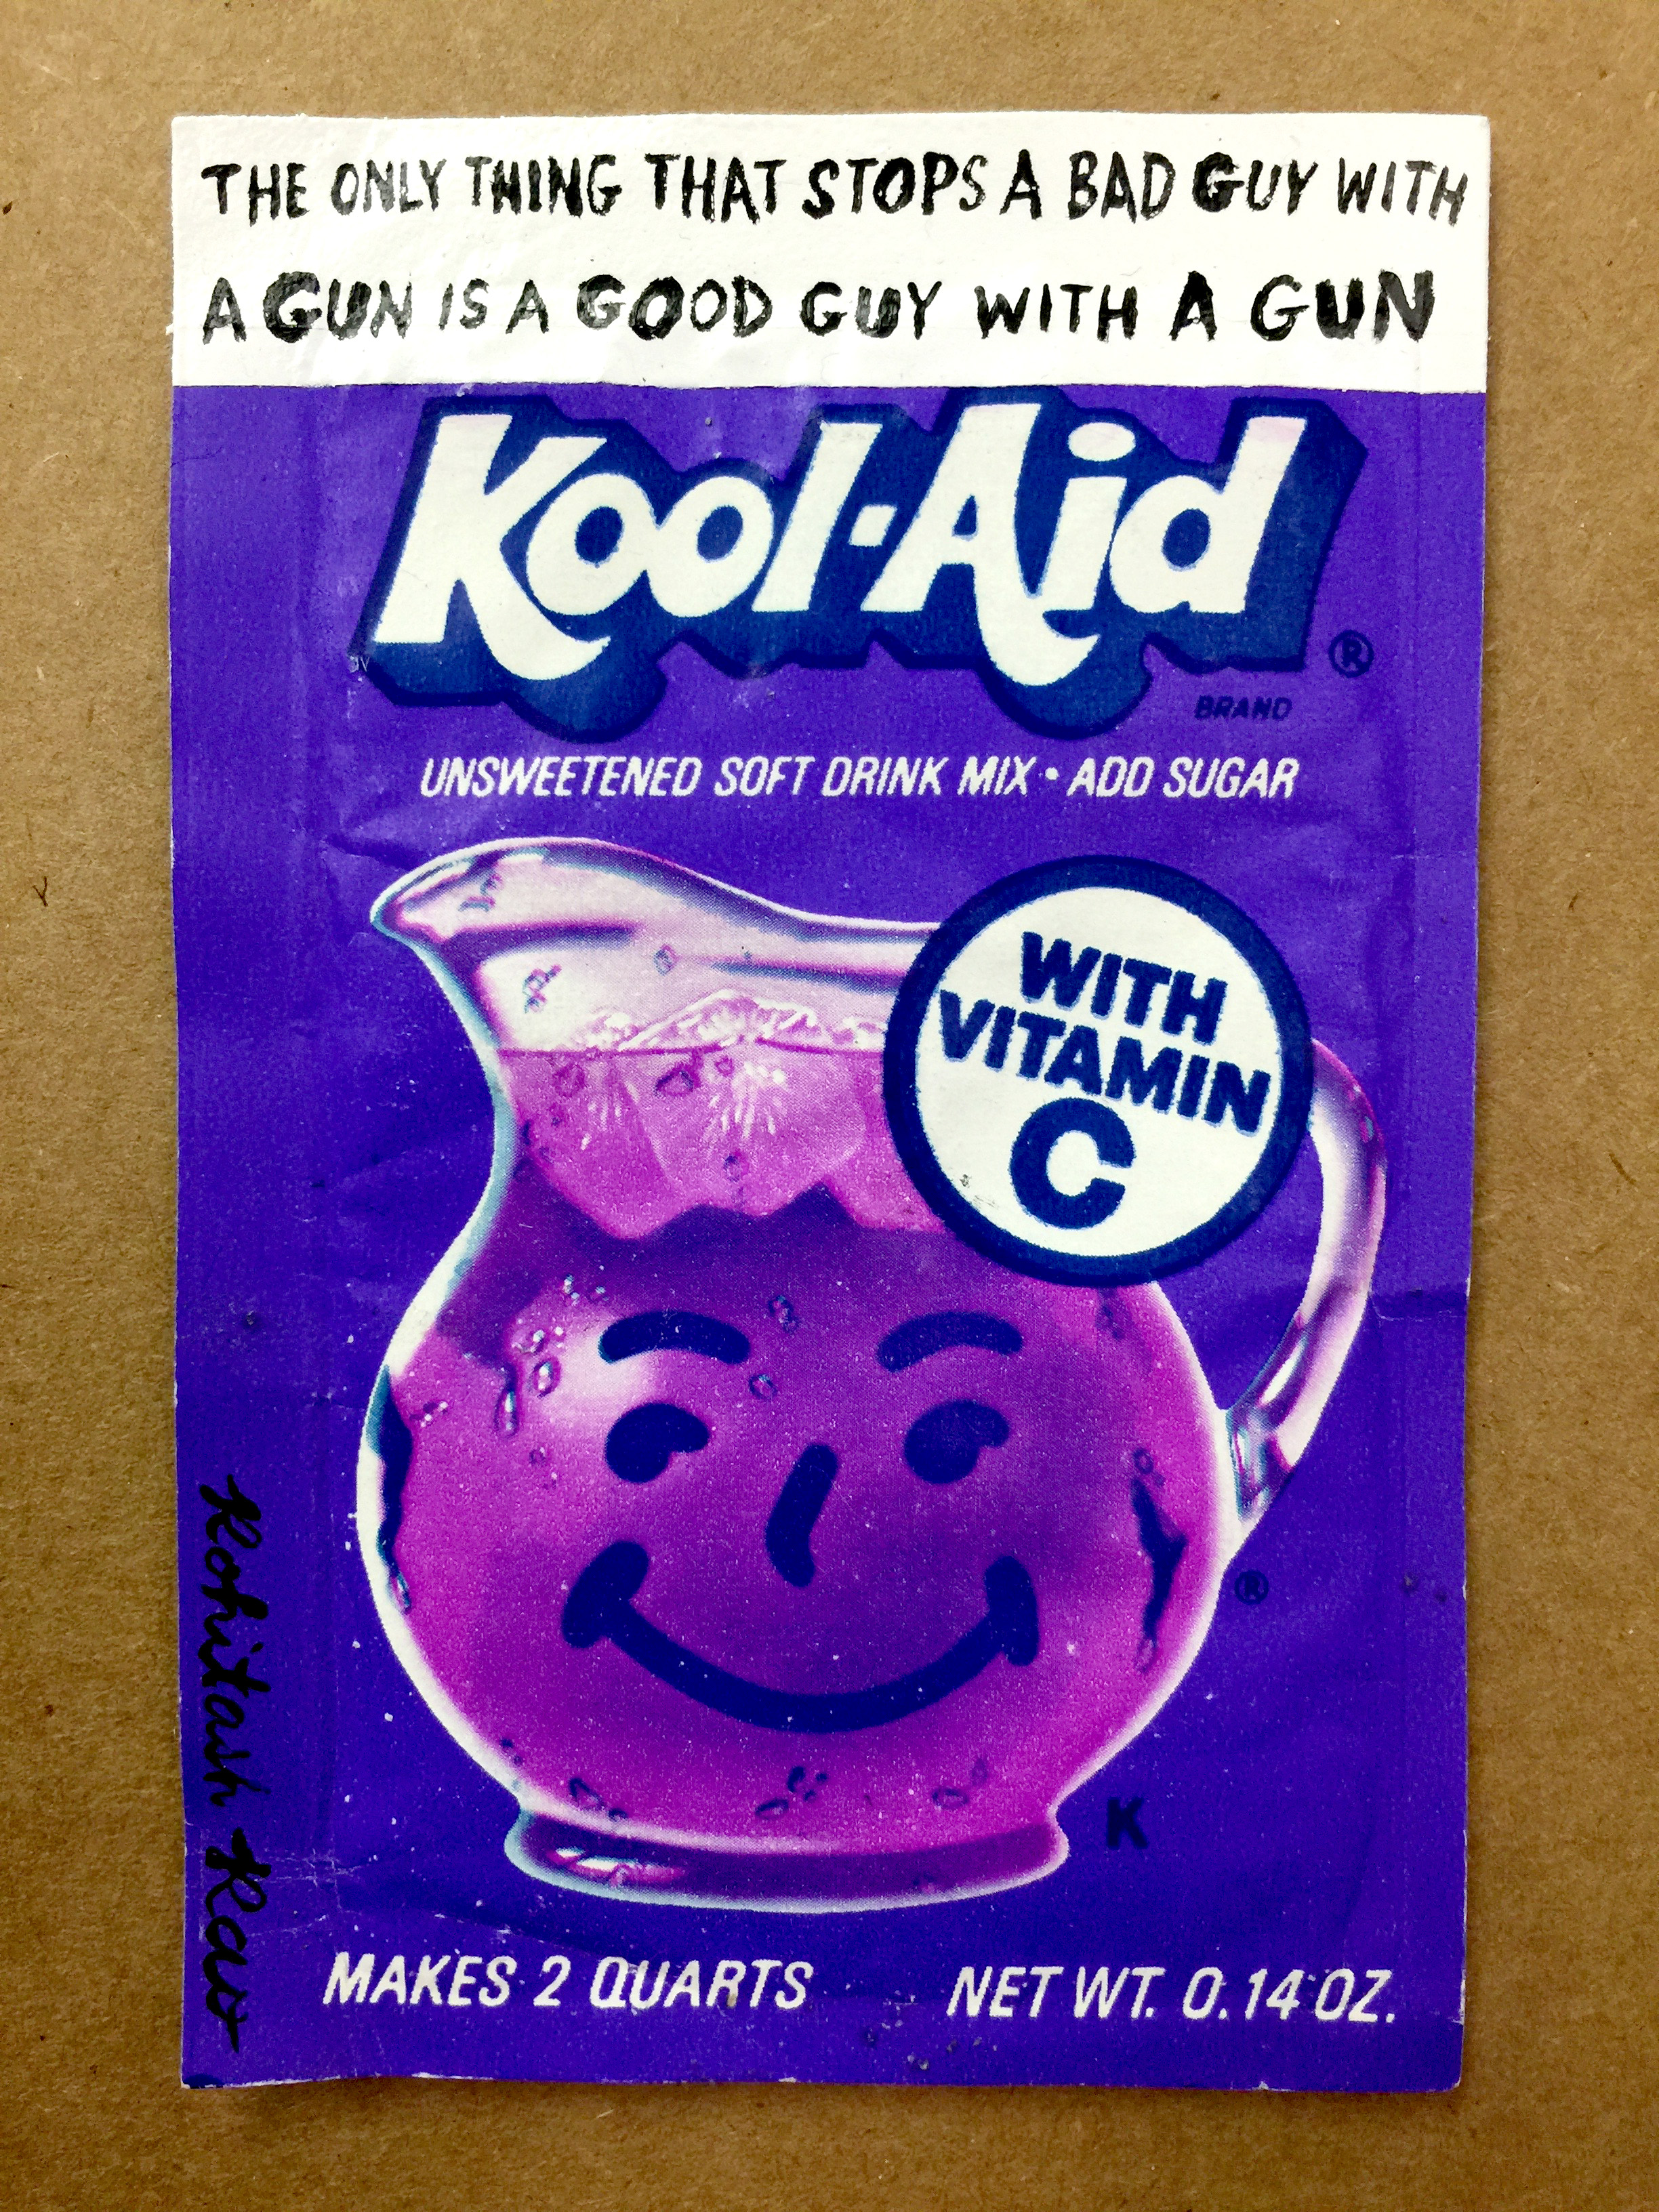 KOOL AID: BAD GUY WITH A GUN